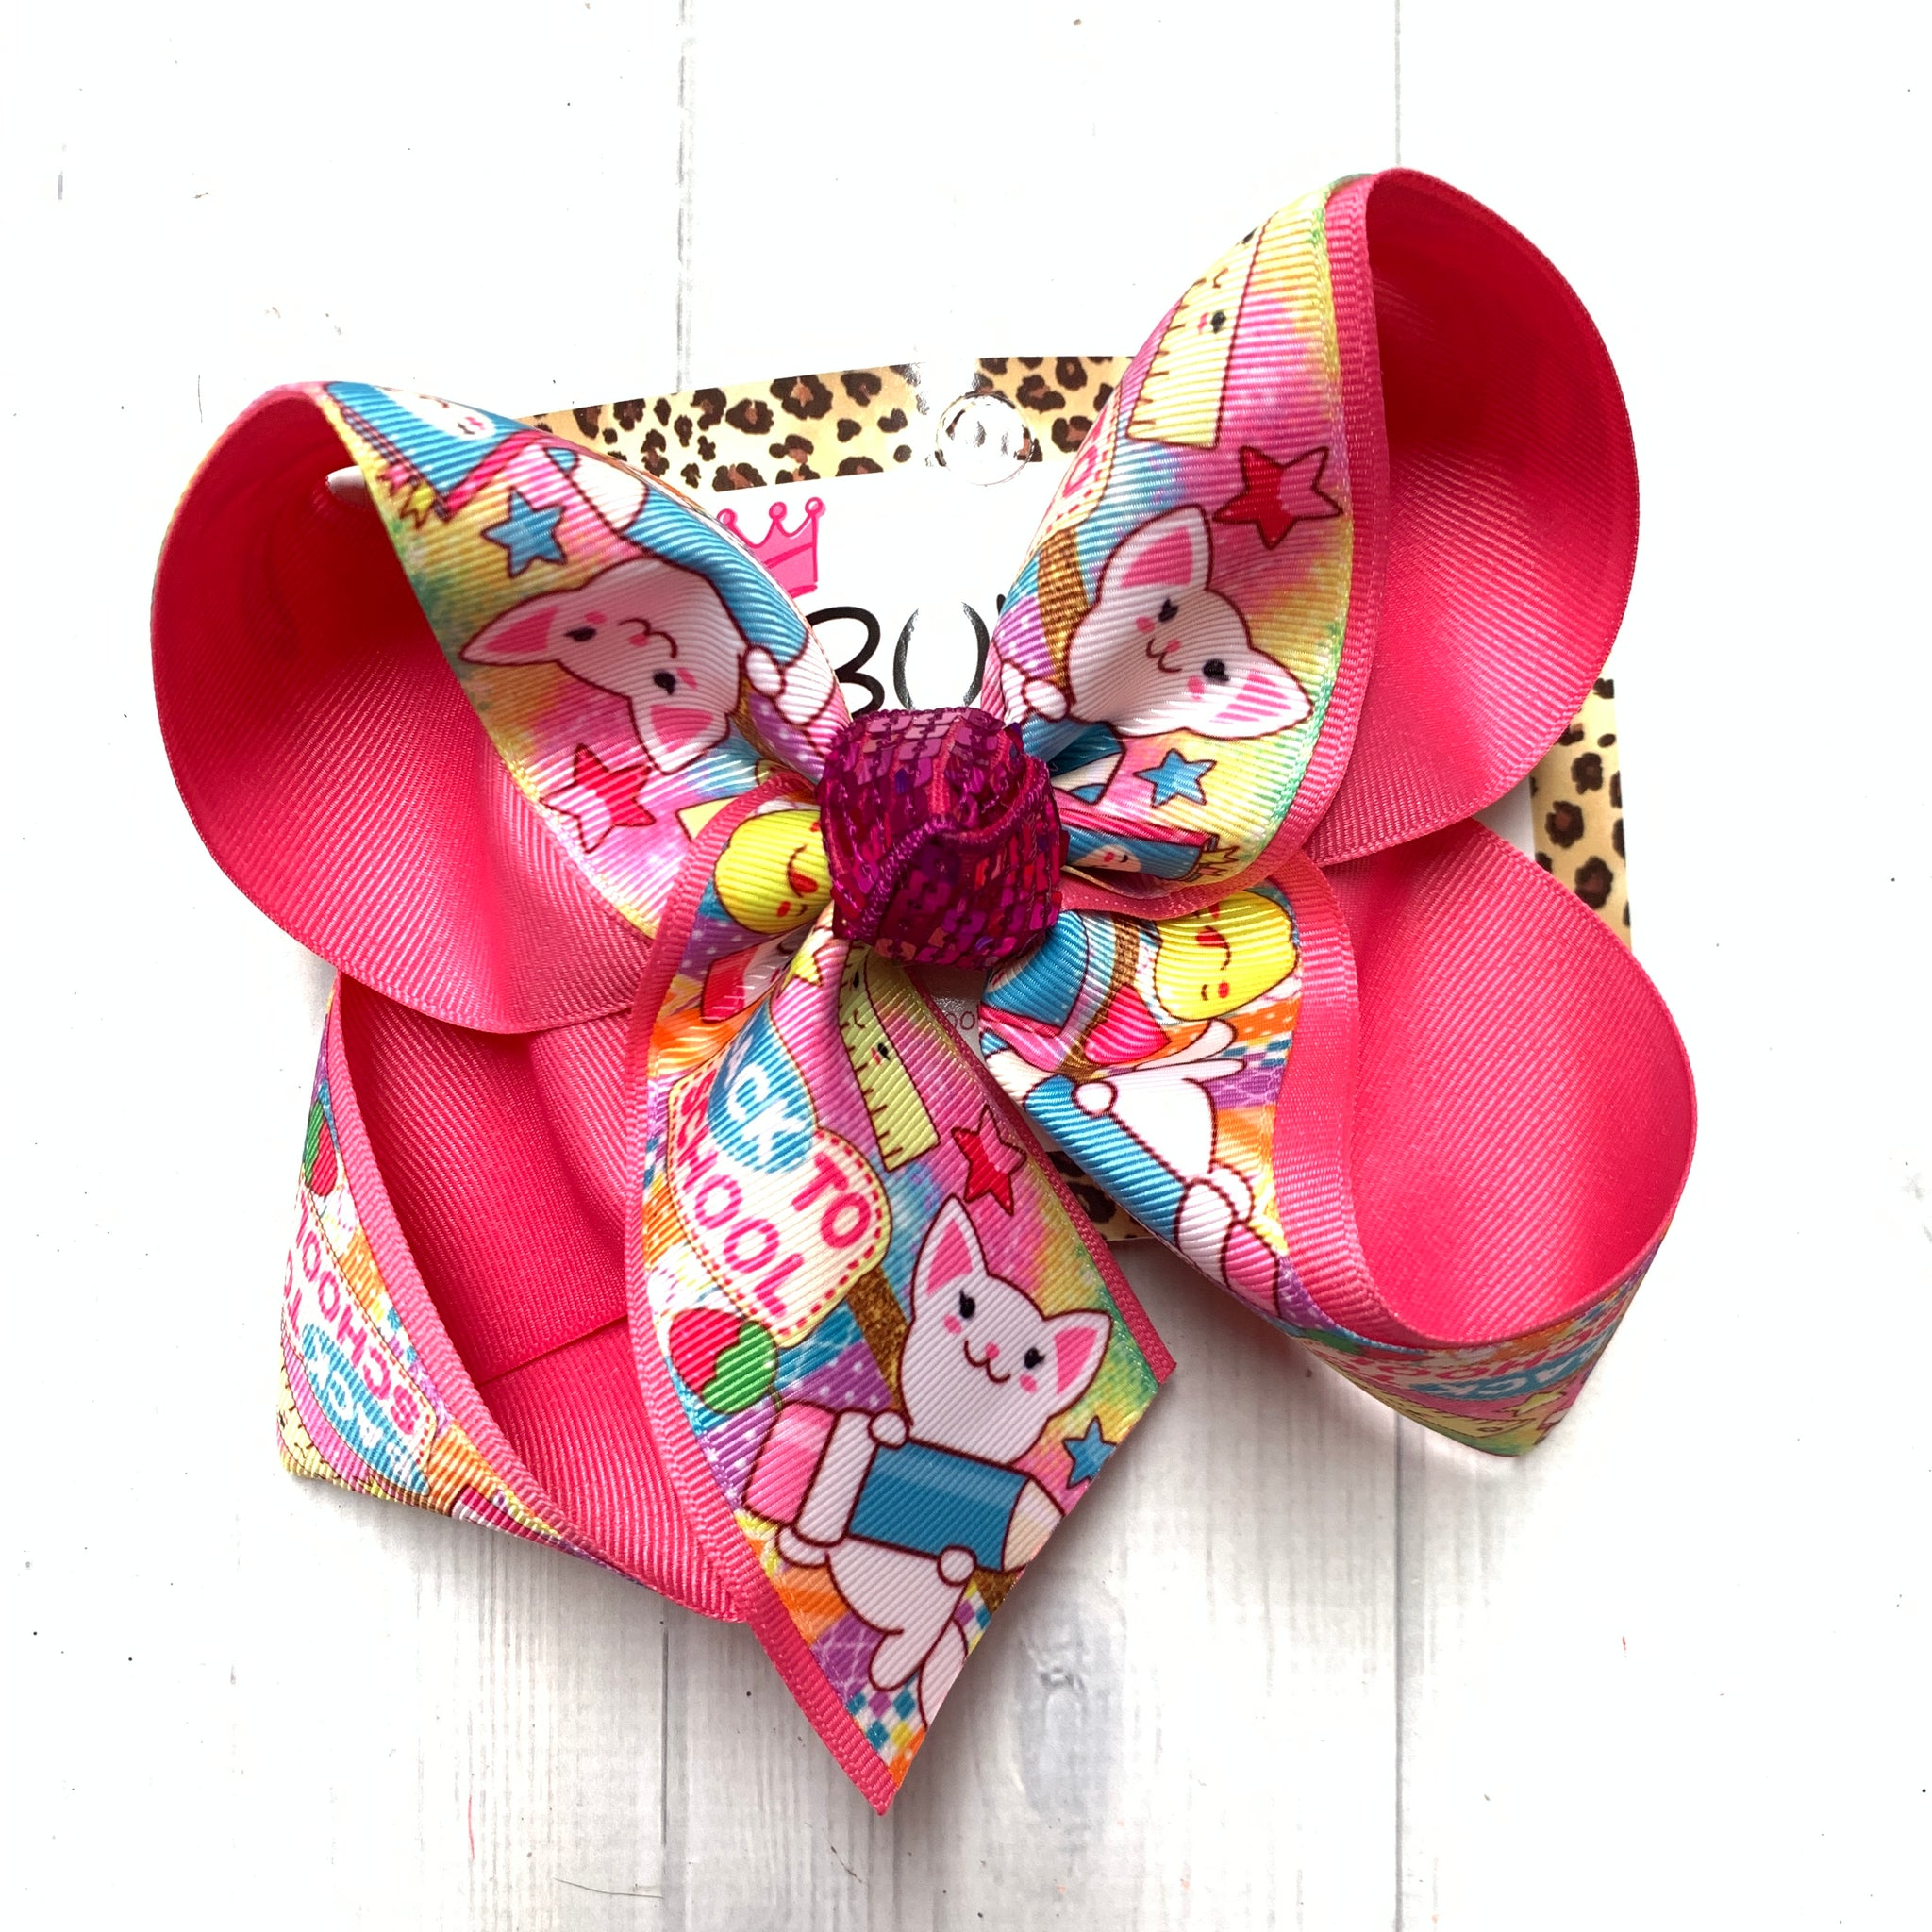 Back to School Fun Print ~Perfect for School time @home or school ~ iBOWZFun & Funky hairbows